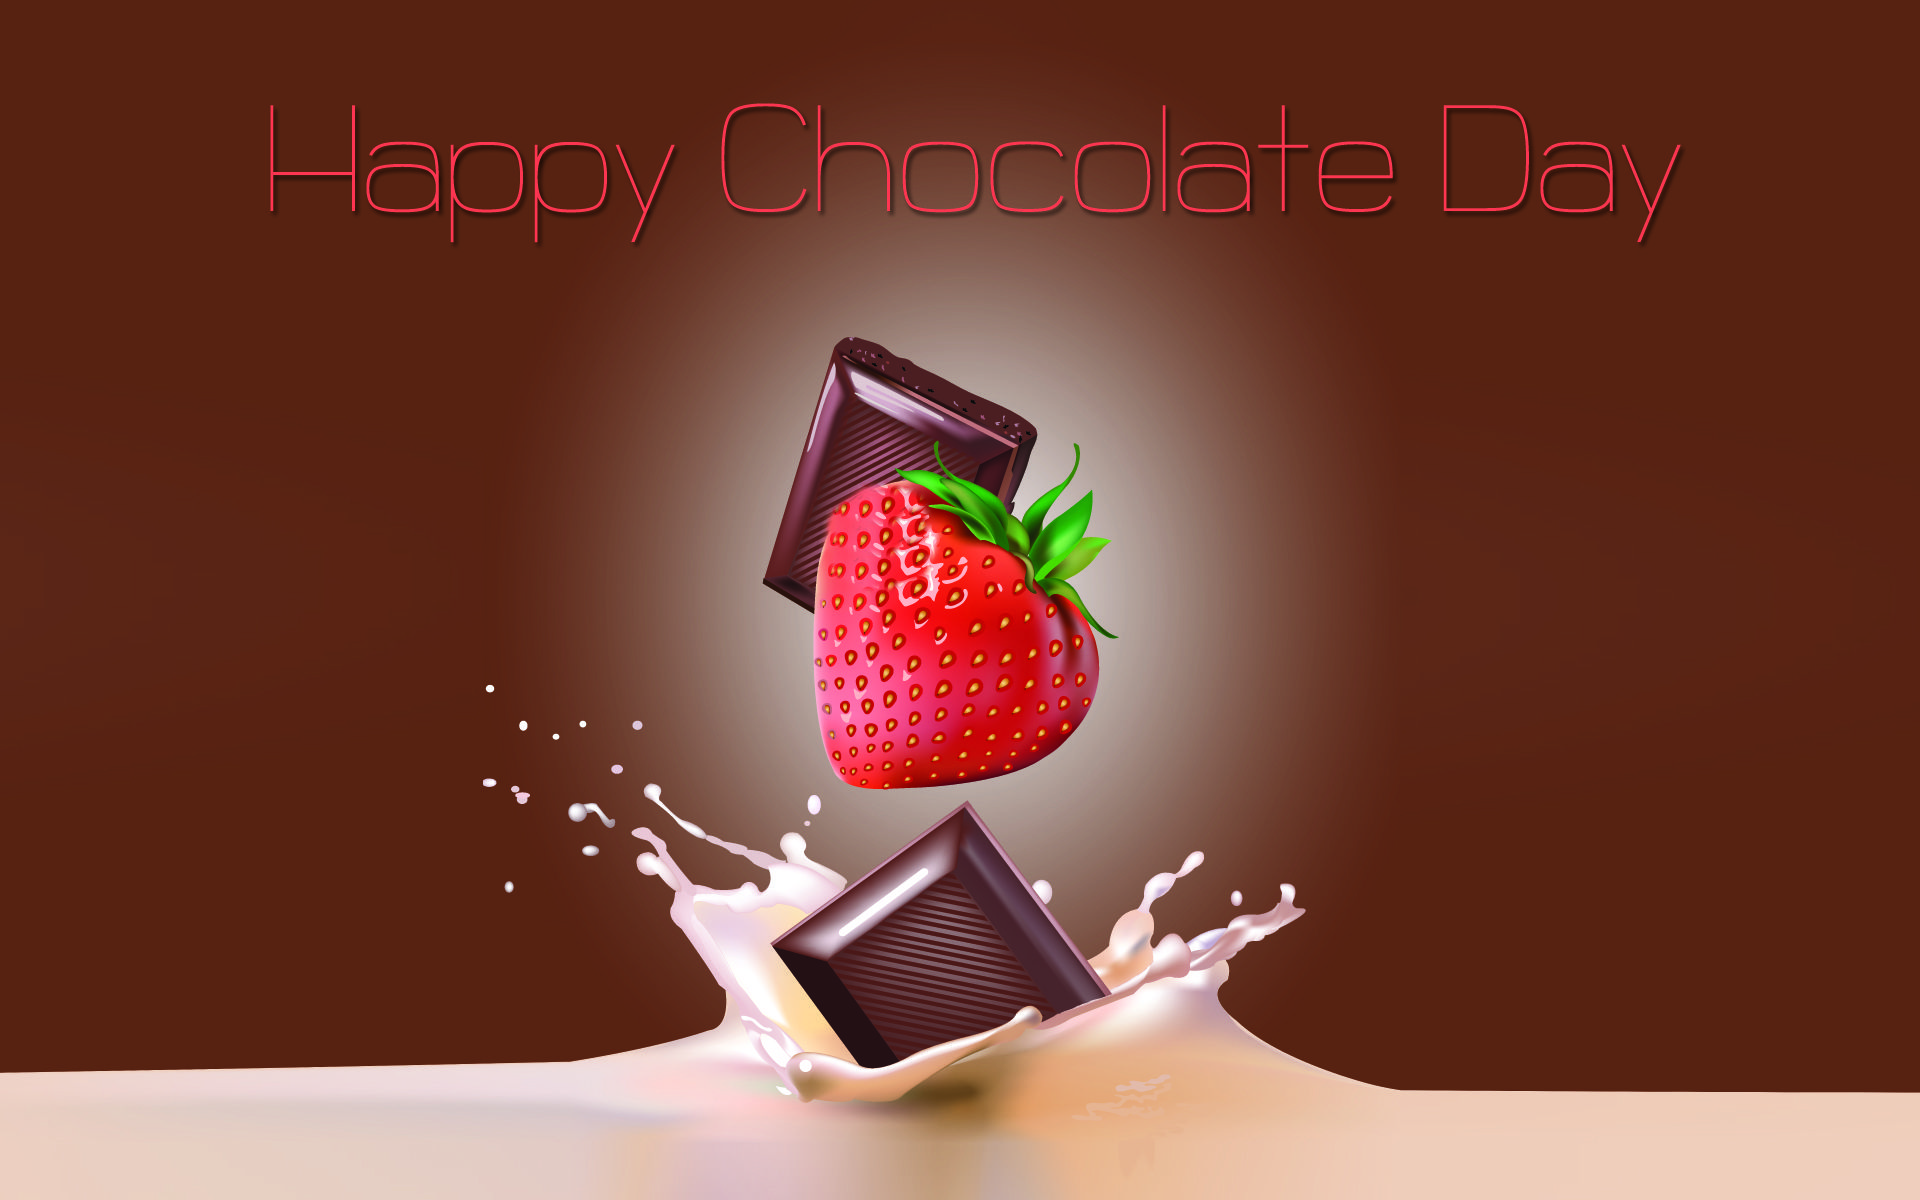 Happy Chocolate Day Quotes. Status For Facebook WhatsApp Instagram